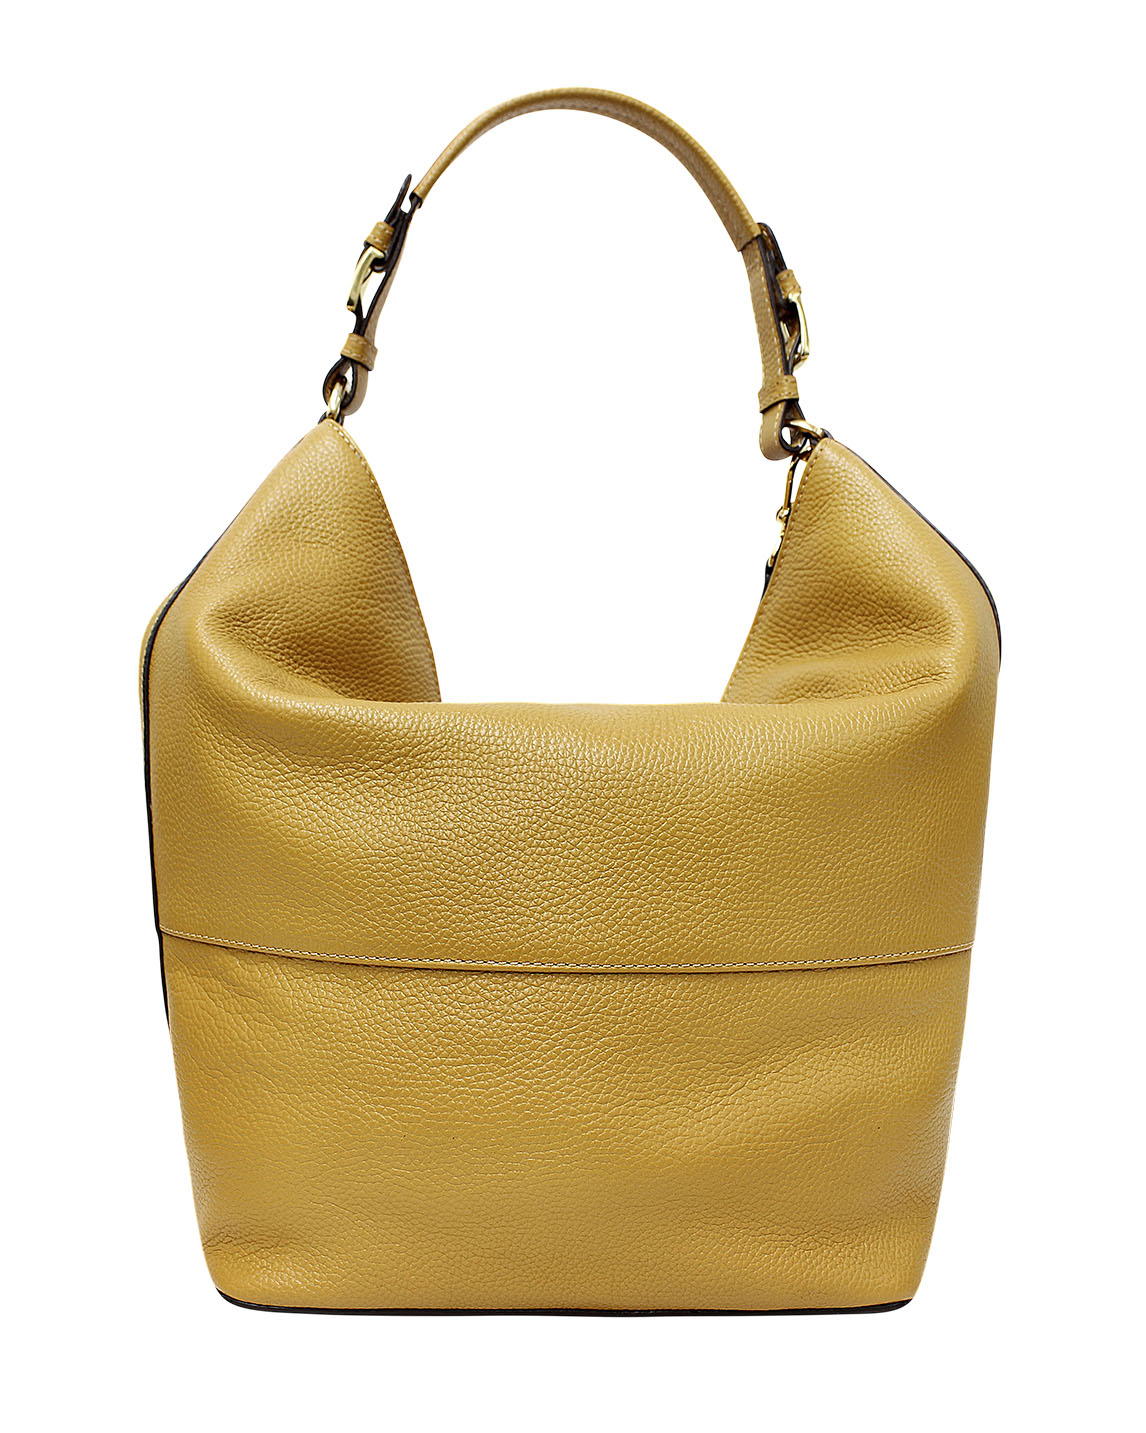 Cartera Tote Bag DS-2627 Color Amarillo